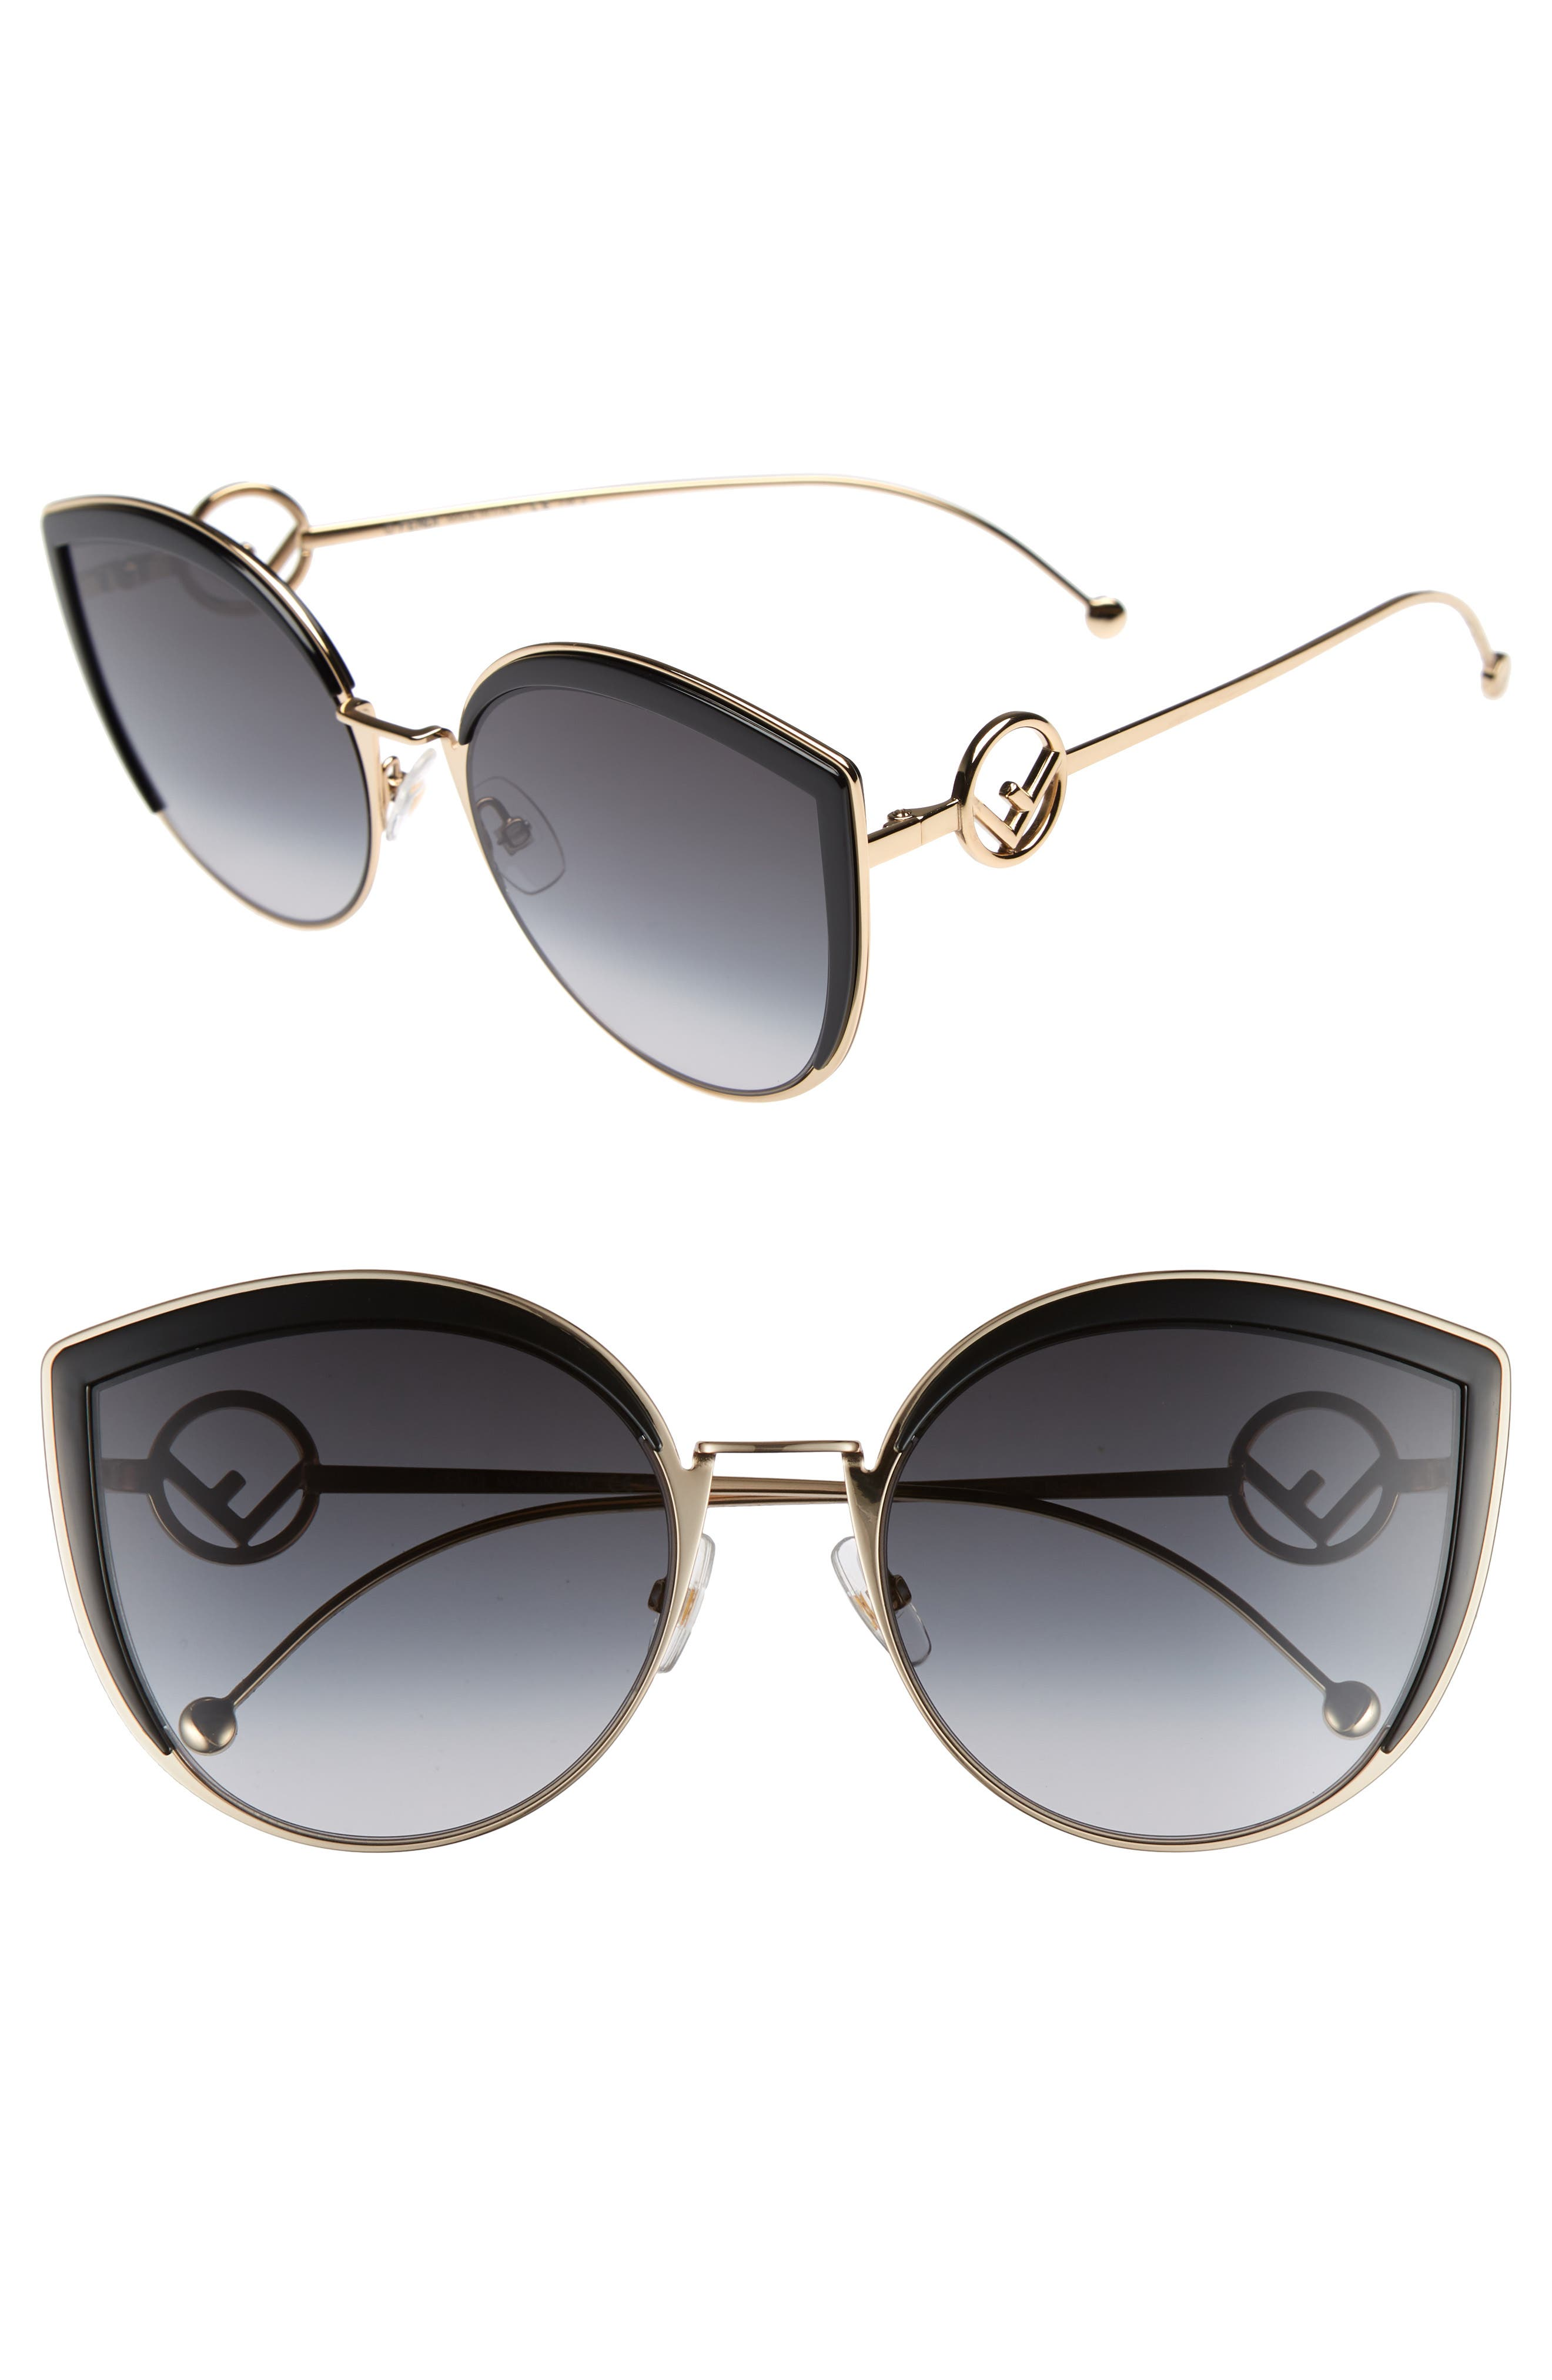 58mm Metal Butterfly Sunglasses,                             Main thumbnail 1, color,                             001